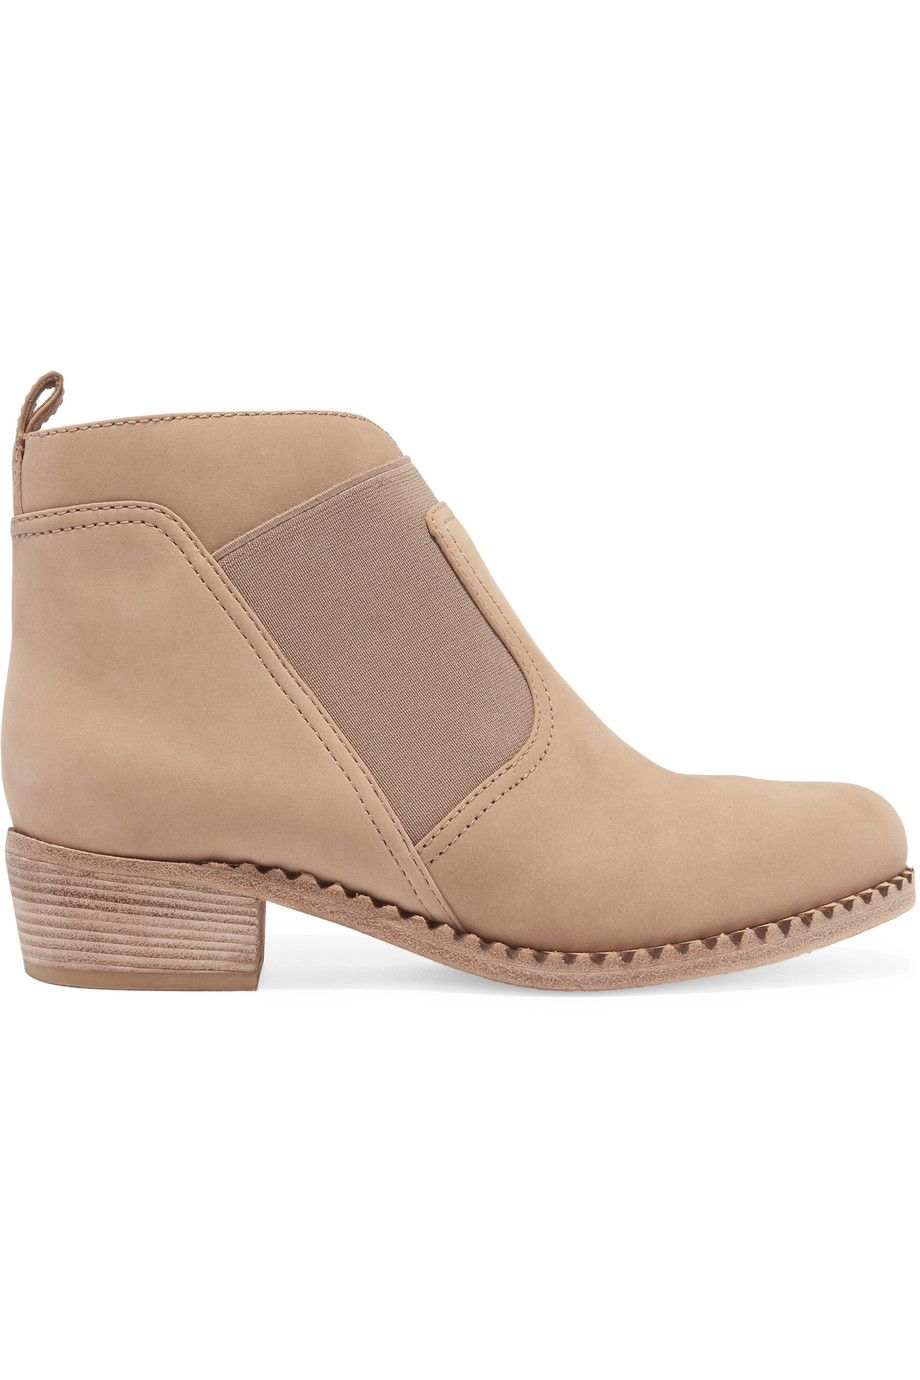 free shipping classic Marc by Marc Jacobs Suede Ankle Boots for sale online outlet low shipping zTXcT